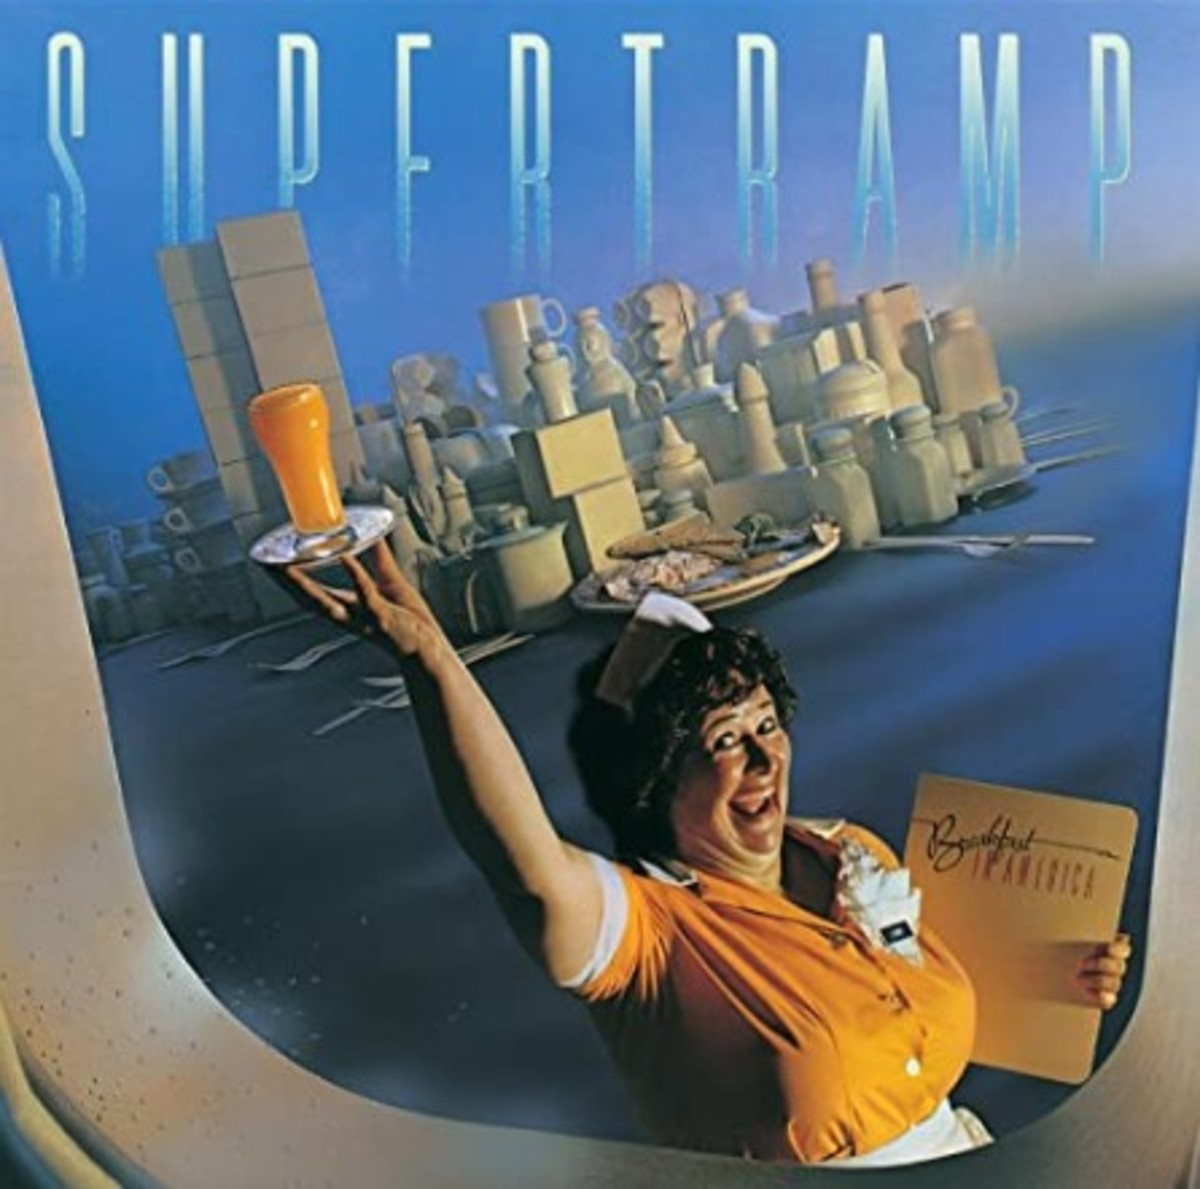 Liar Supertramp